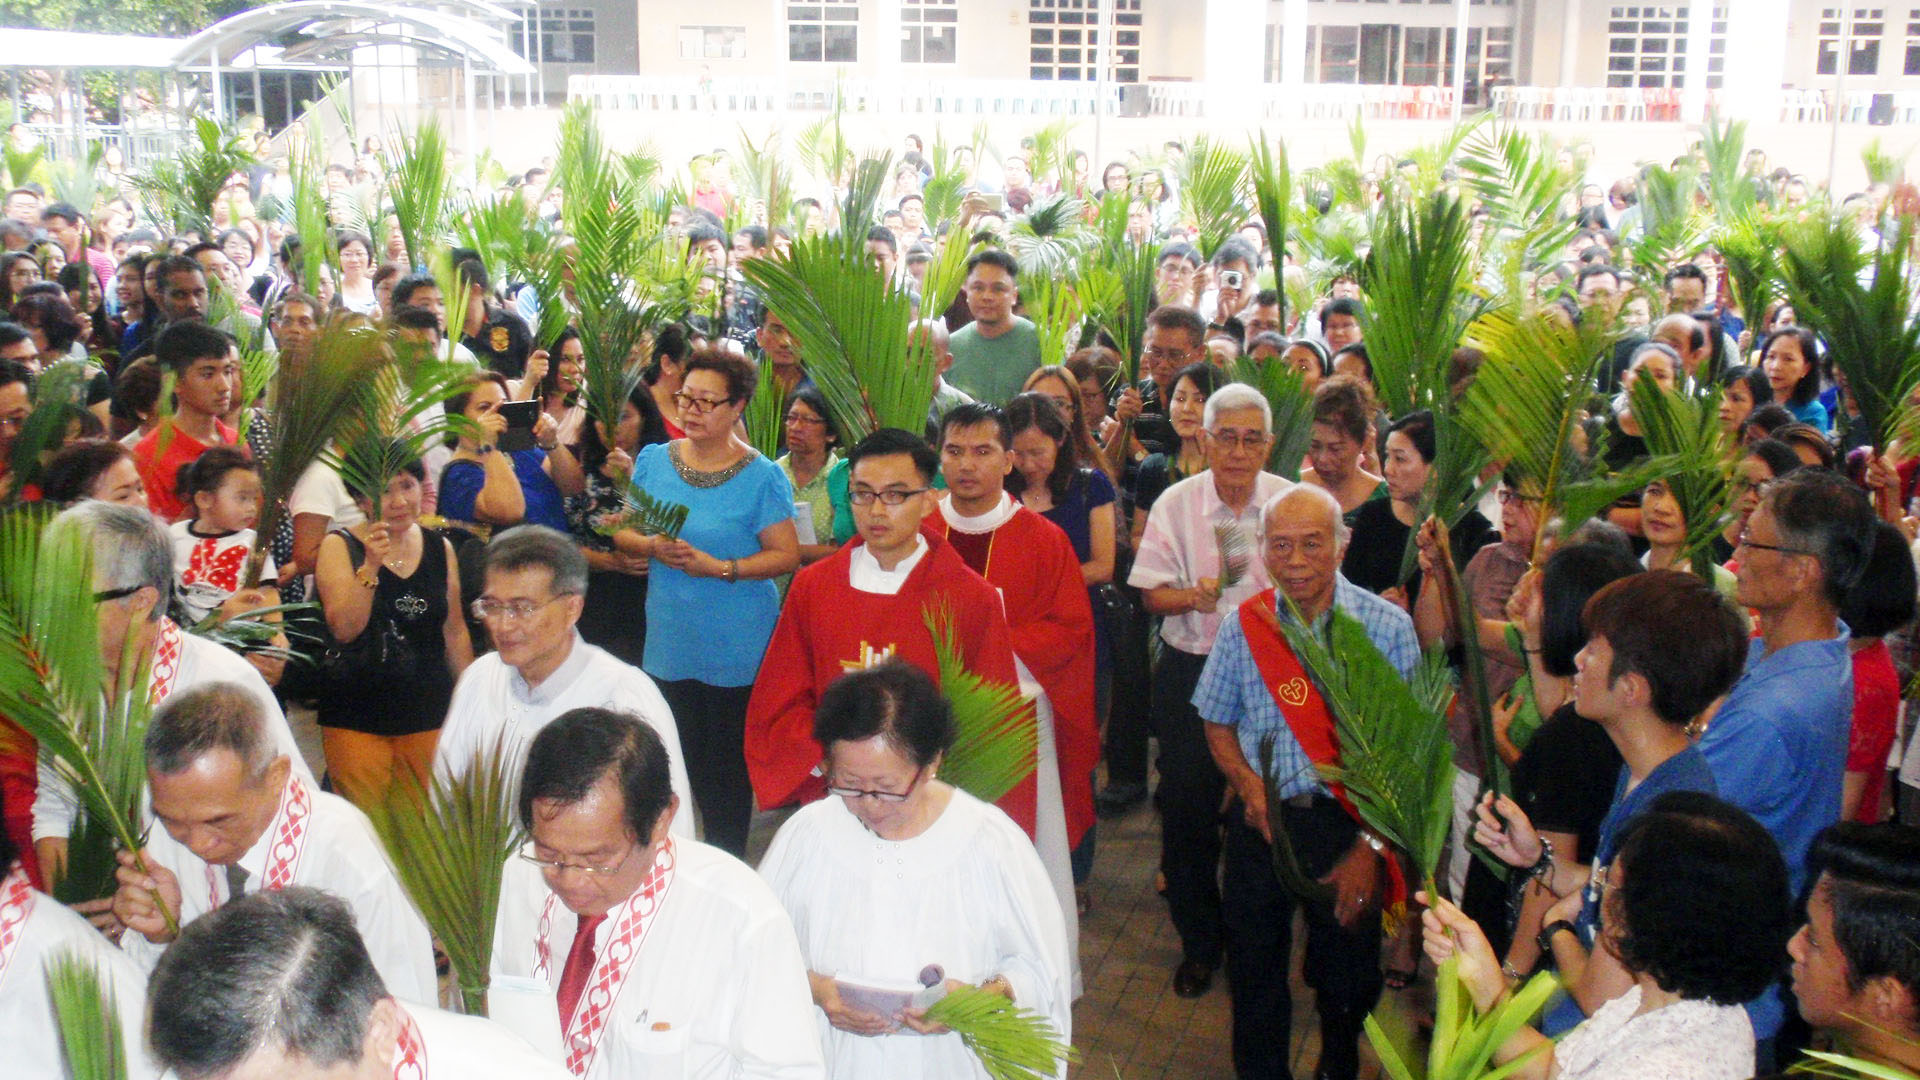 The people make the procession to the cathedral after the blessing of palms at the Sacred Heart Parish Centre foyer Mar 19.